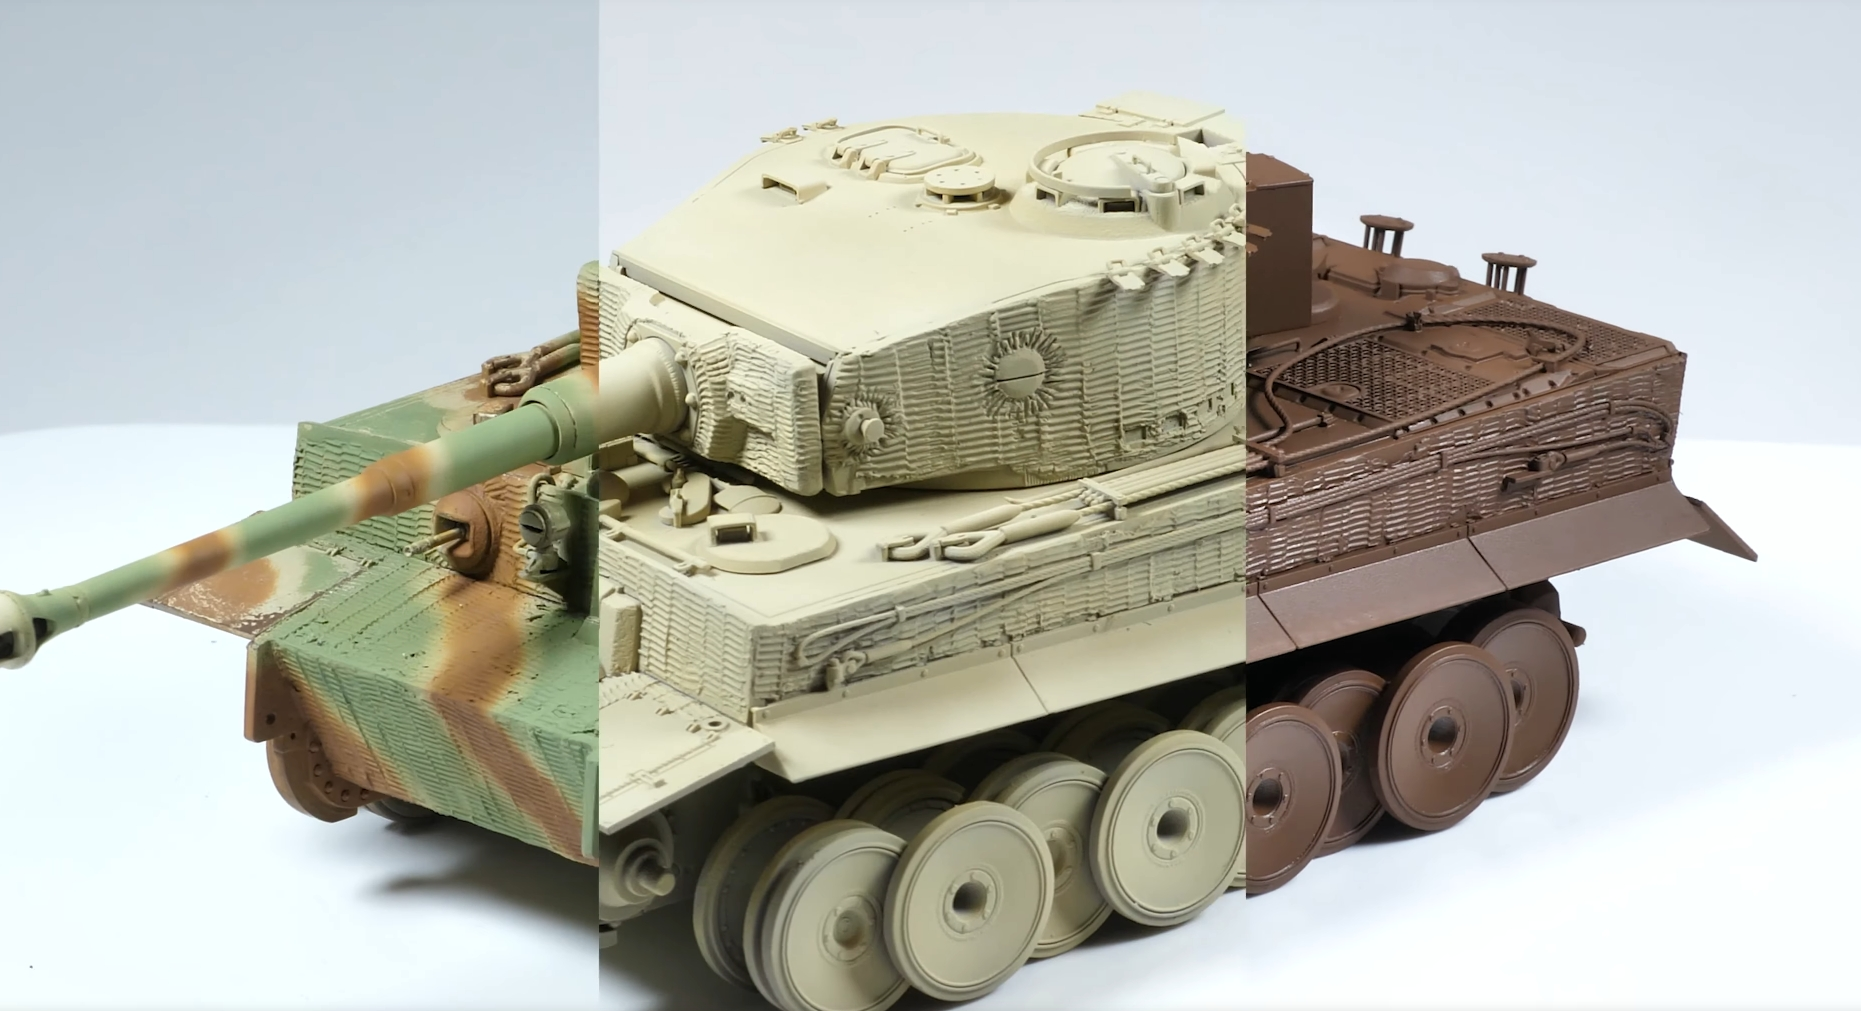 What Airbrush to Paint a Tank With?